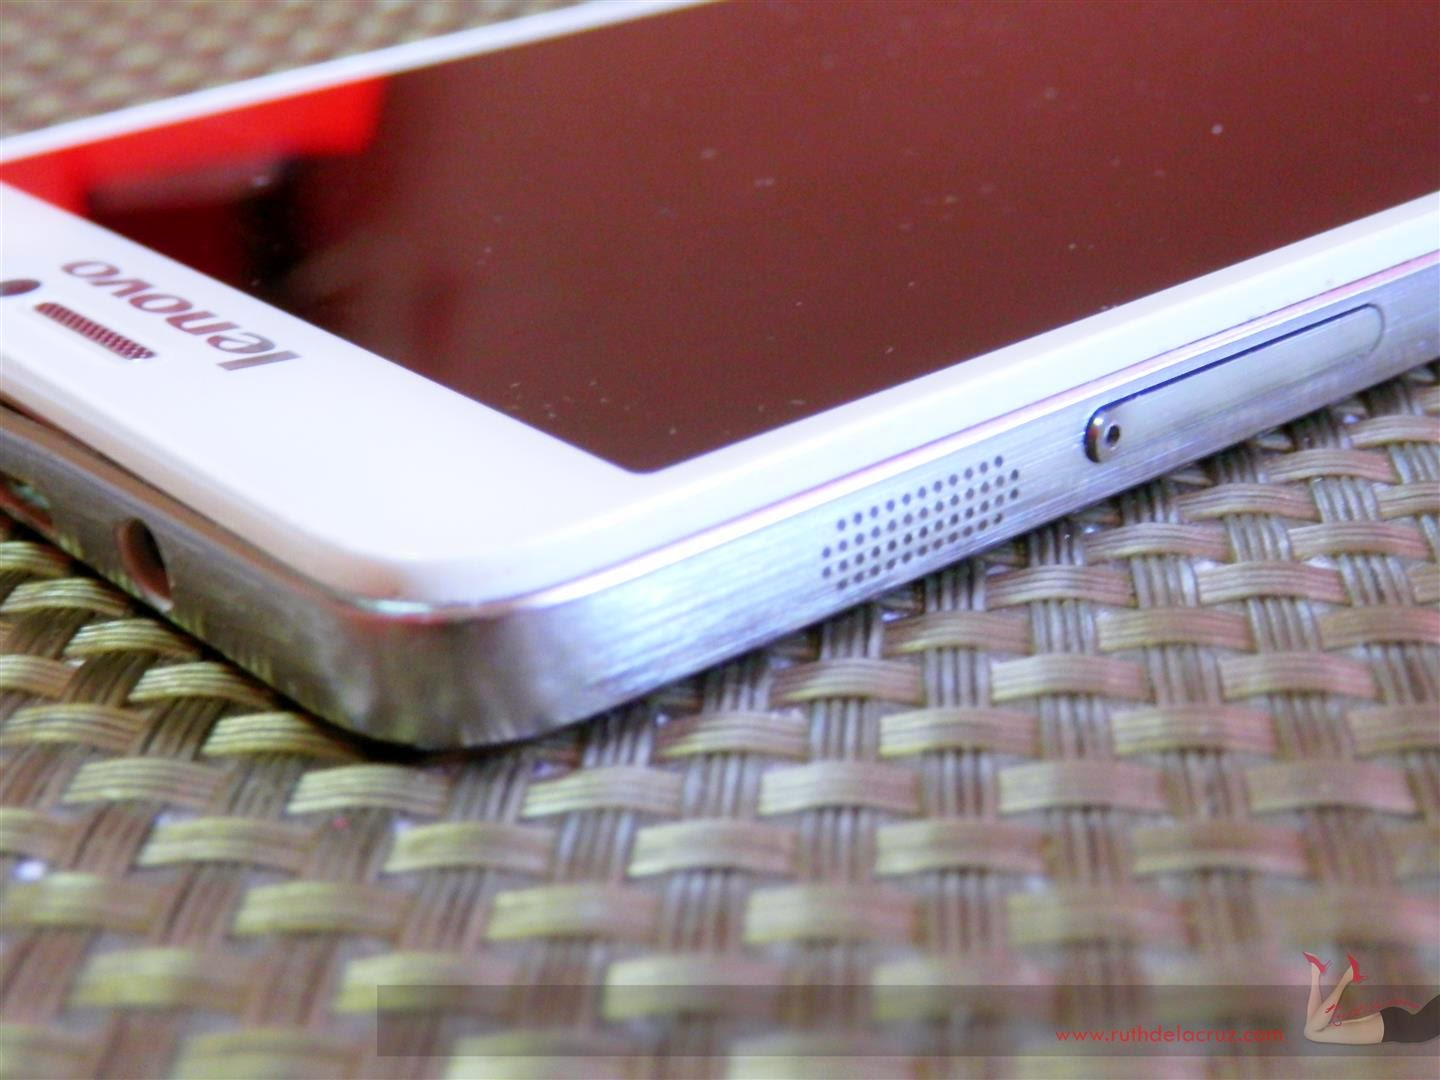 Ruthdelacruz Travel And Lifestyle Blog Review Lenovo S850 Quadcore Processor This Smartphone Seemed Perfect If Not For Key Opening The Sim Slot Which Can Accommodate Two Micro Sims A Second I Felt Worried About